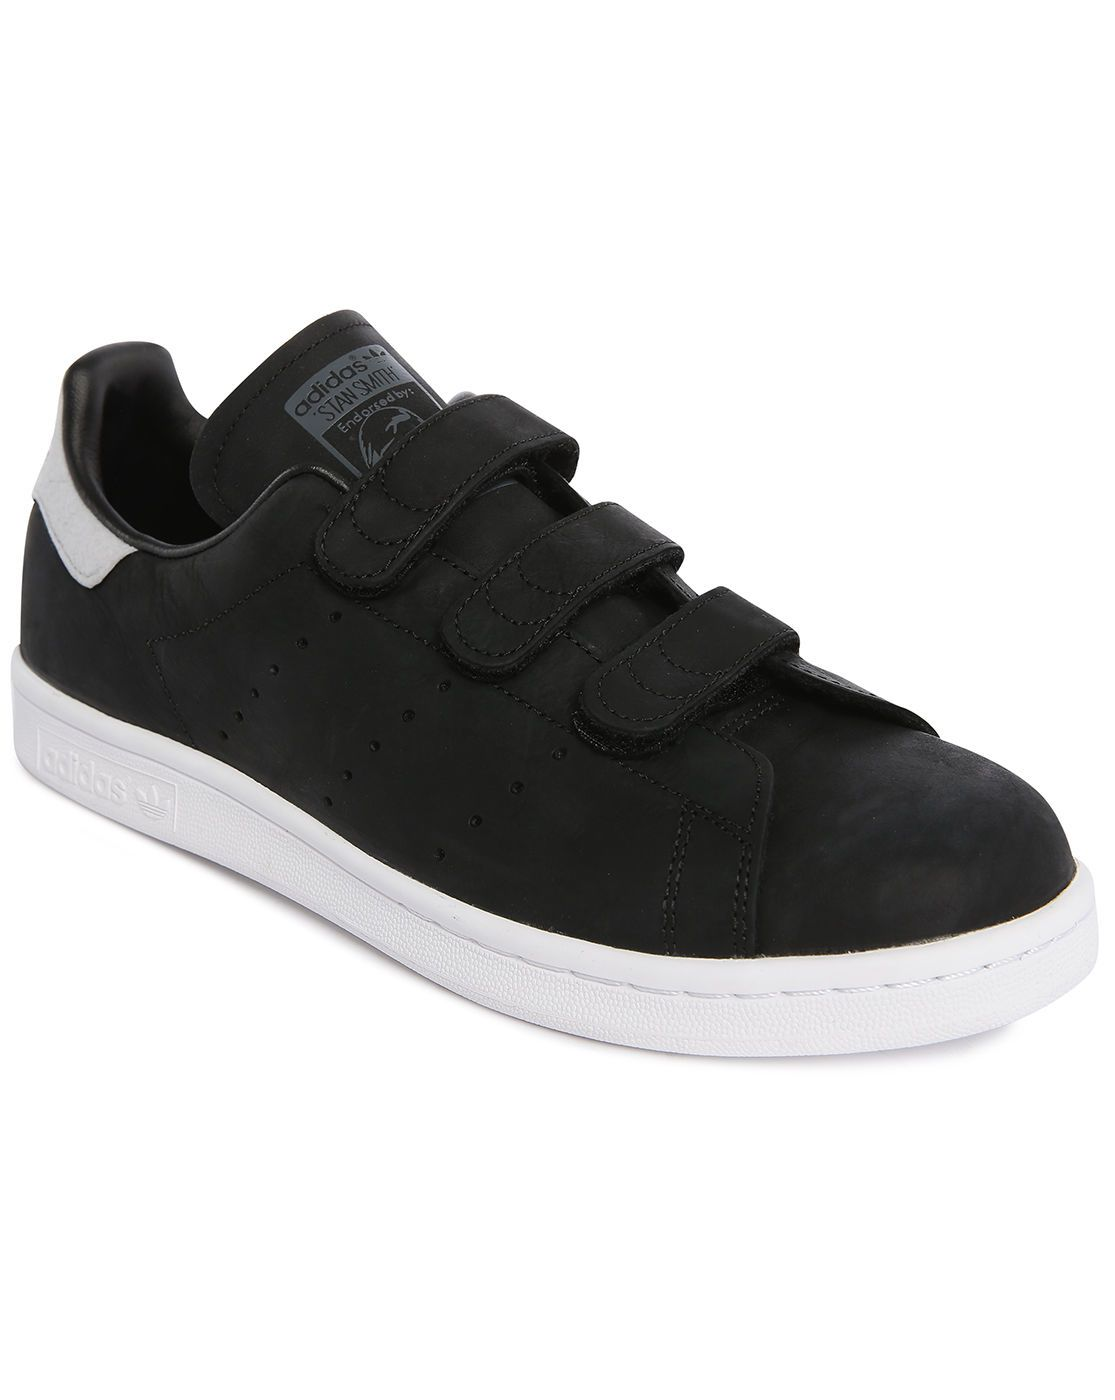 velcro sneakers | Adidas originals Stan Smith Black Leather Velcro Sneakers  in Black for .